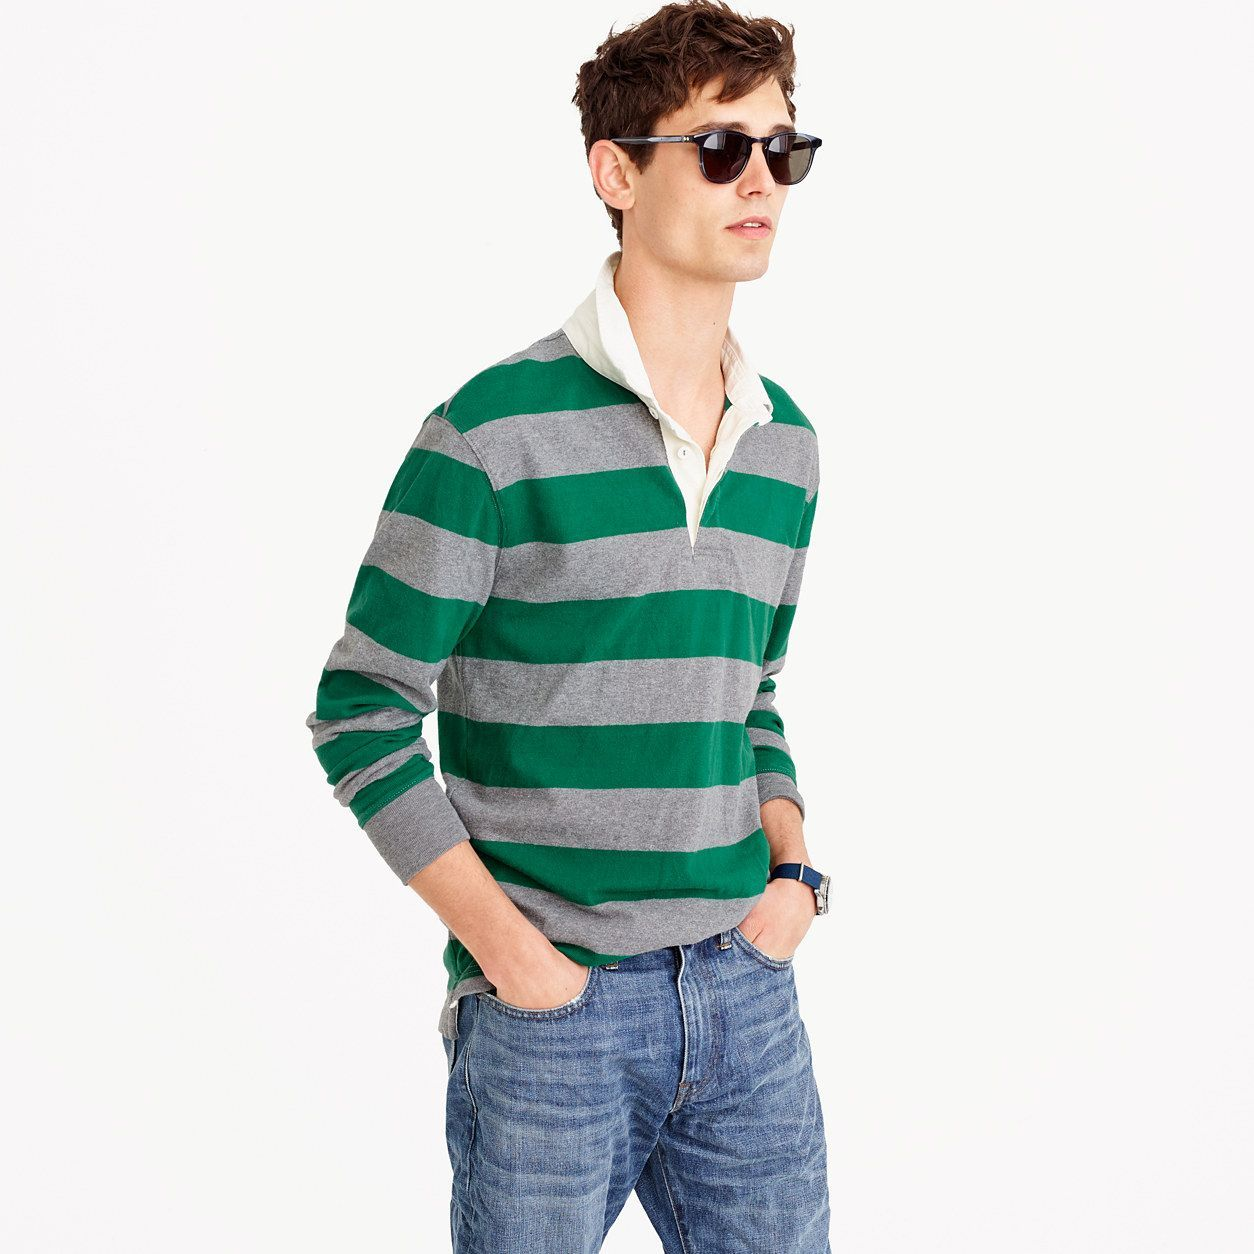 J Crew Mens Tall Rugby Shirt In Grey-And-Green Stripe (Size